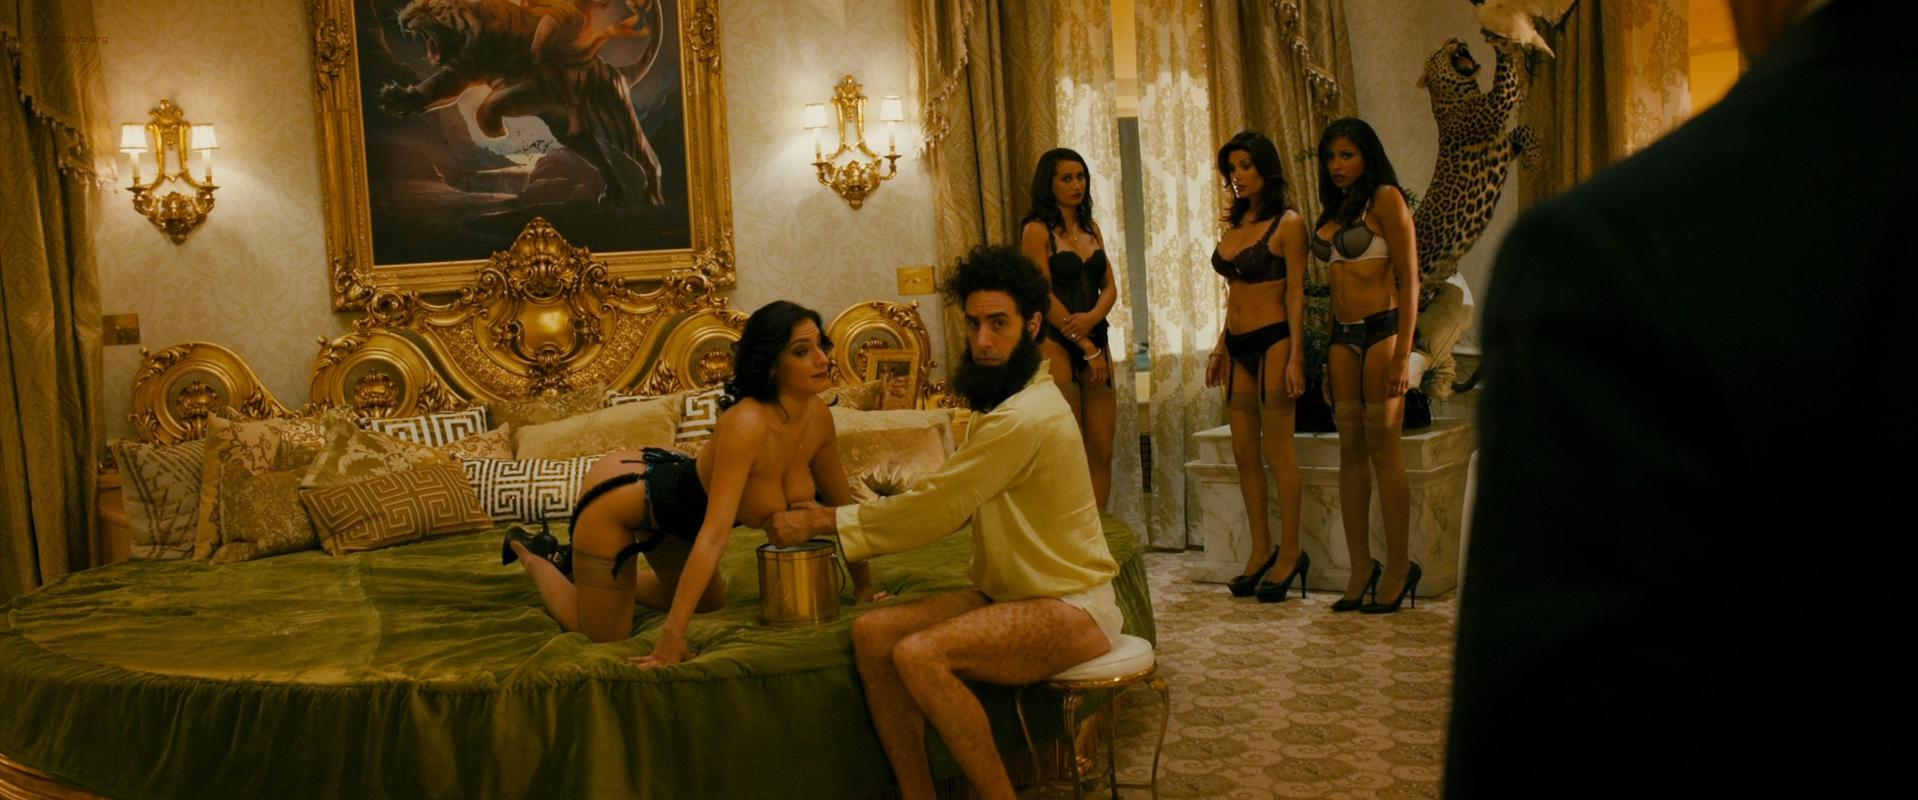 Megan Fox sexy, Anna Faris sexy, Dawn Jackson nude, Dominique DiCaprio nude - The Dictator (2012)